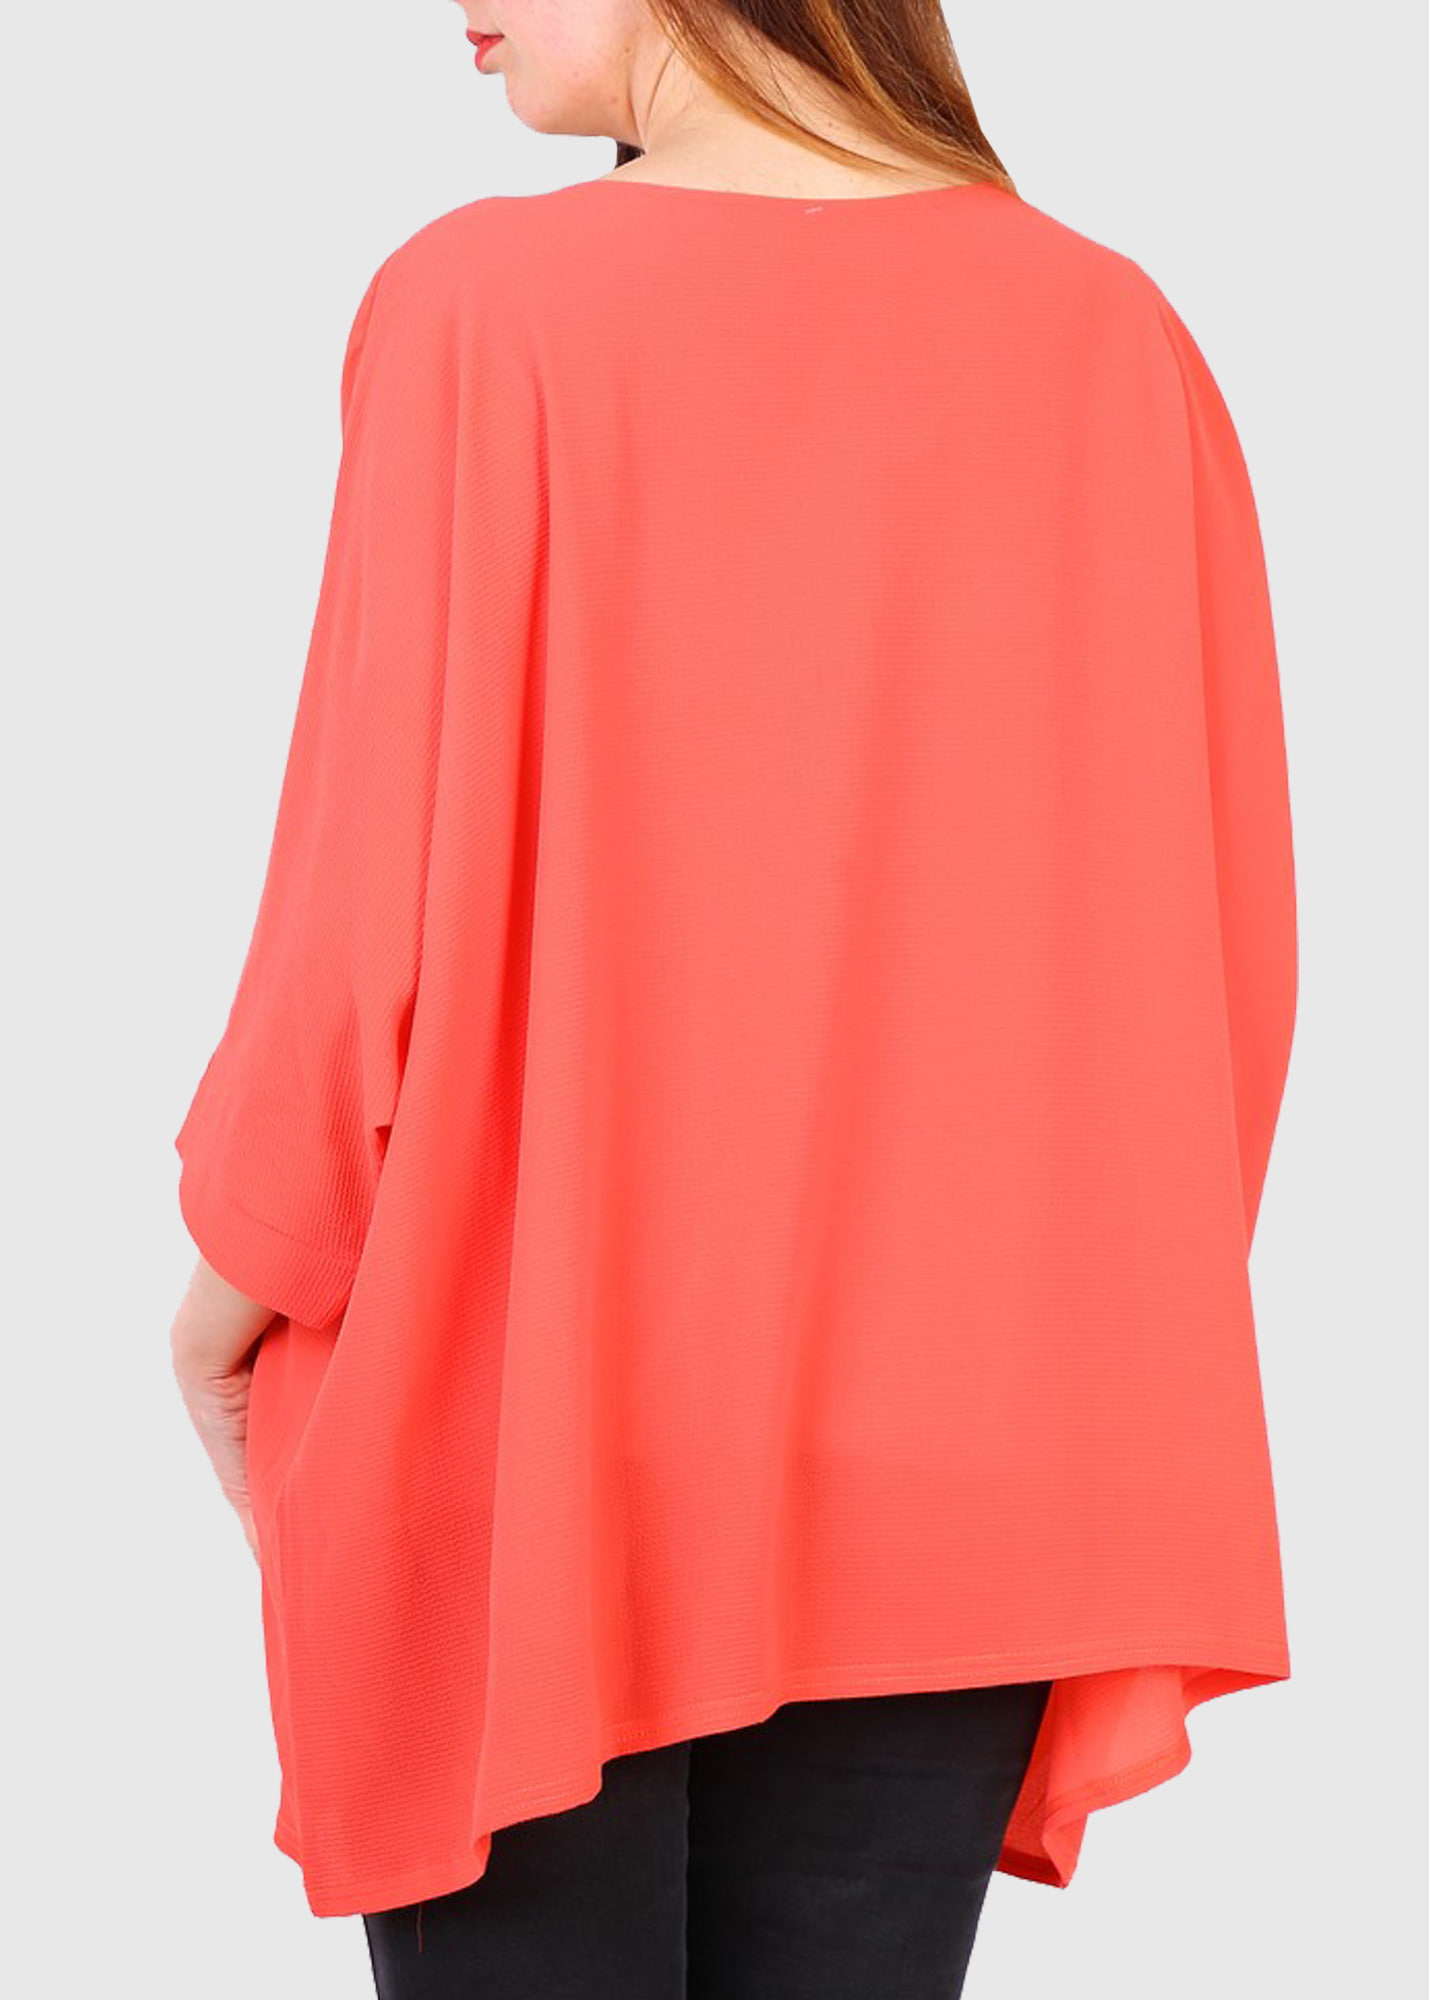 Photo №1 Francesca Plus Size coral blouse